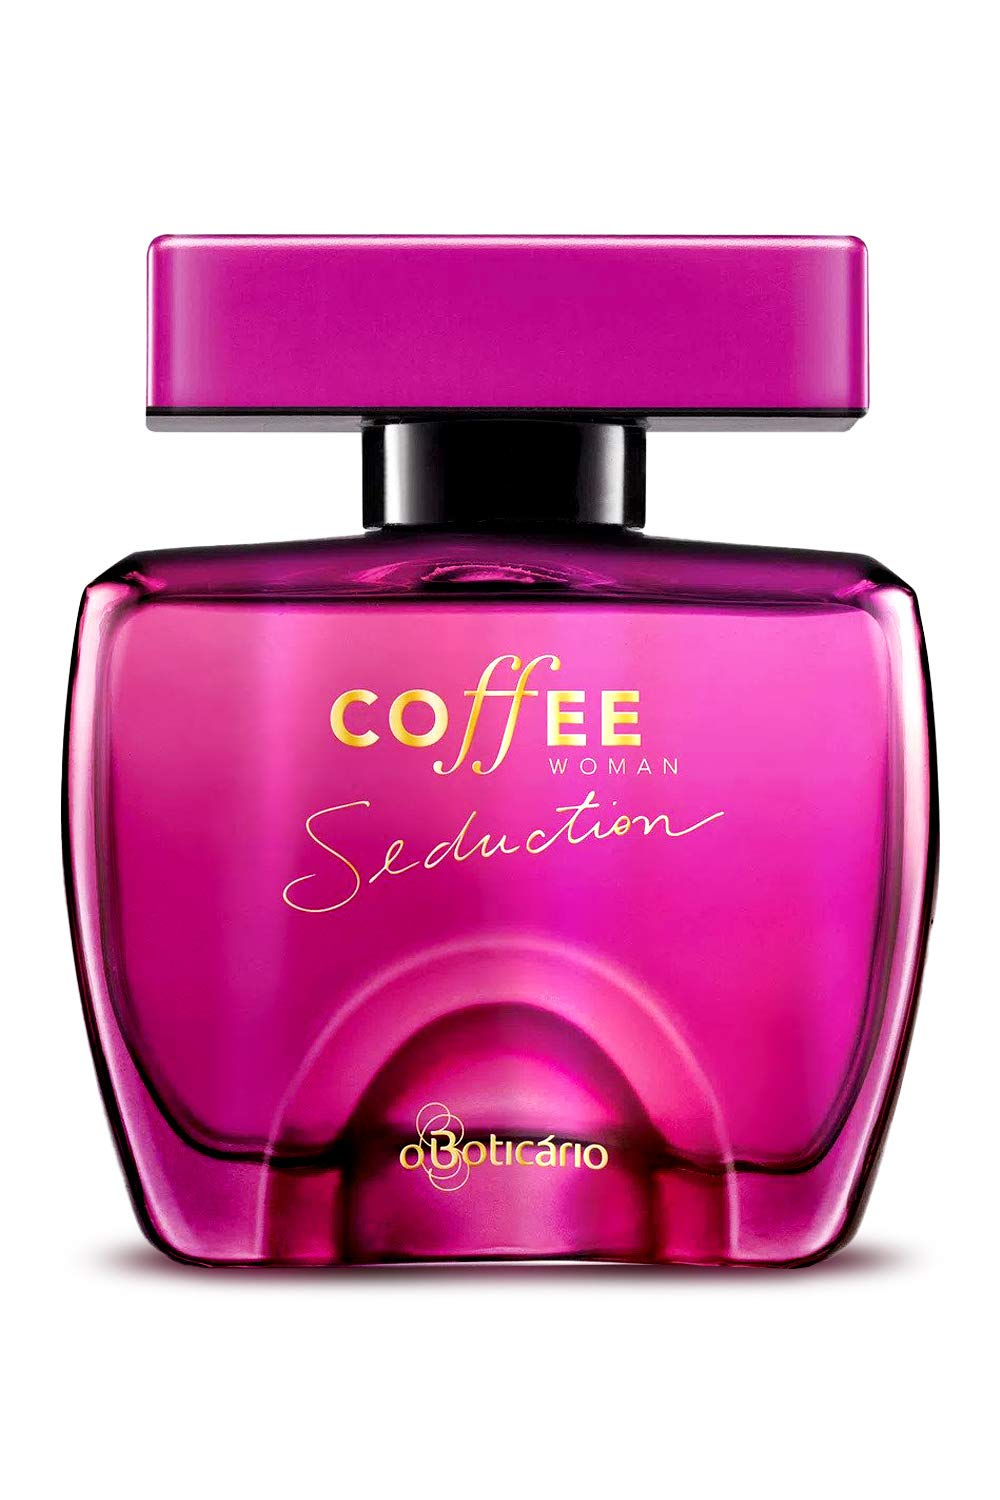 Linha Coffee (Woman) Boticario - Colonia Seduction 100ML - (Boticario Coffee (Woman) Collection - SeductionEau De Toillete 3.38 Fl Oz)